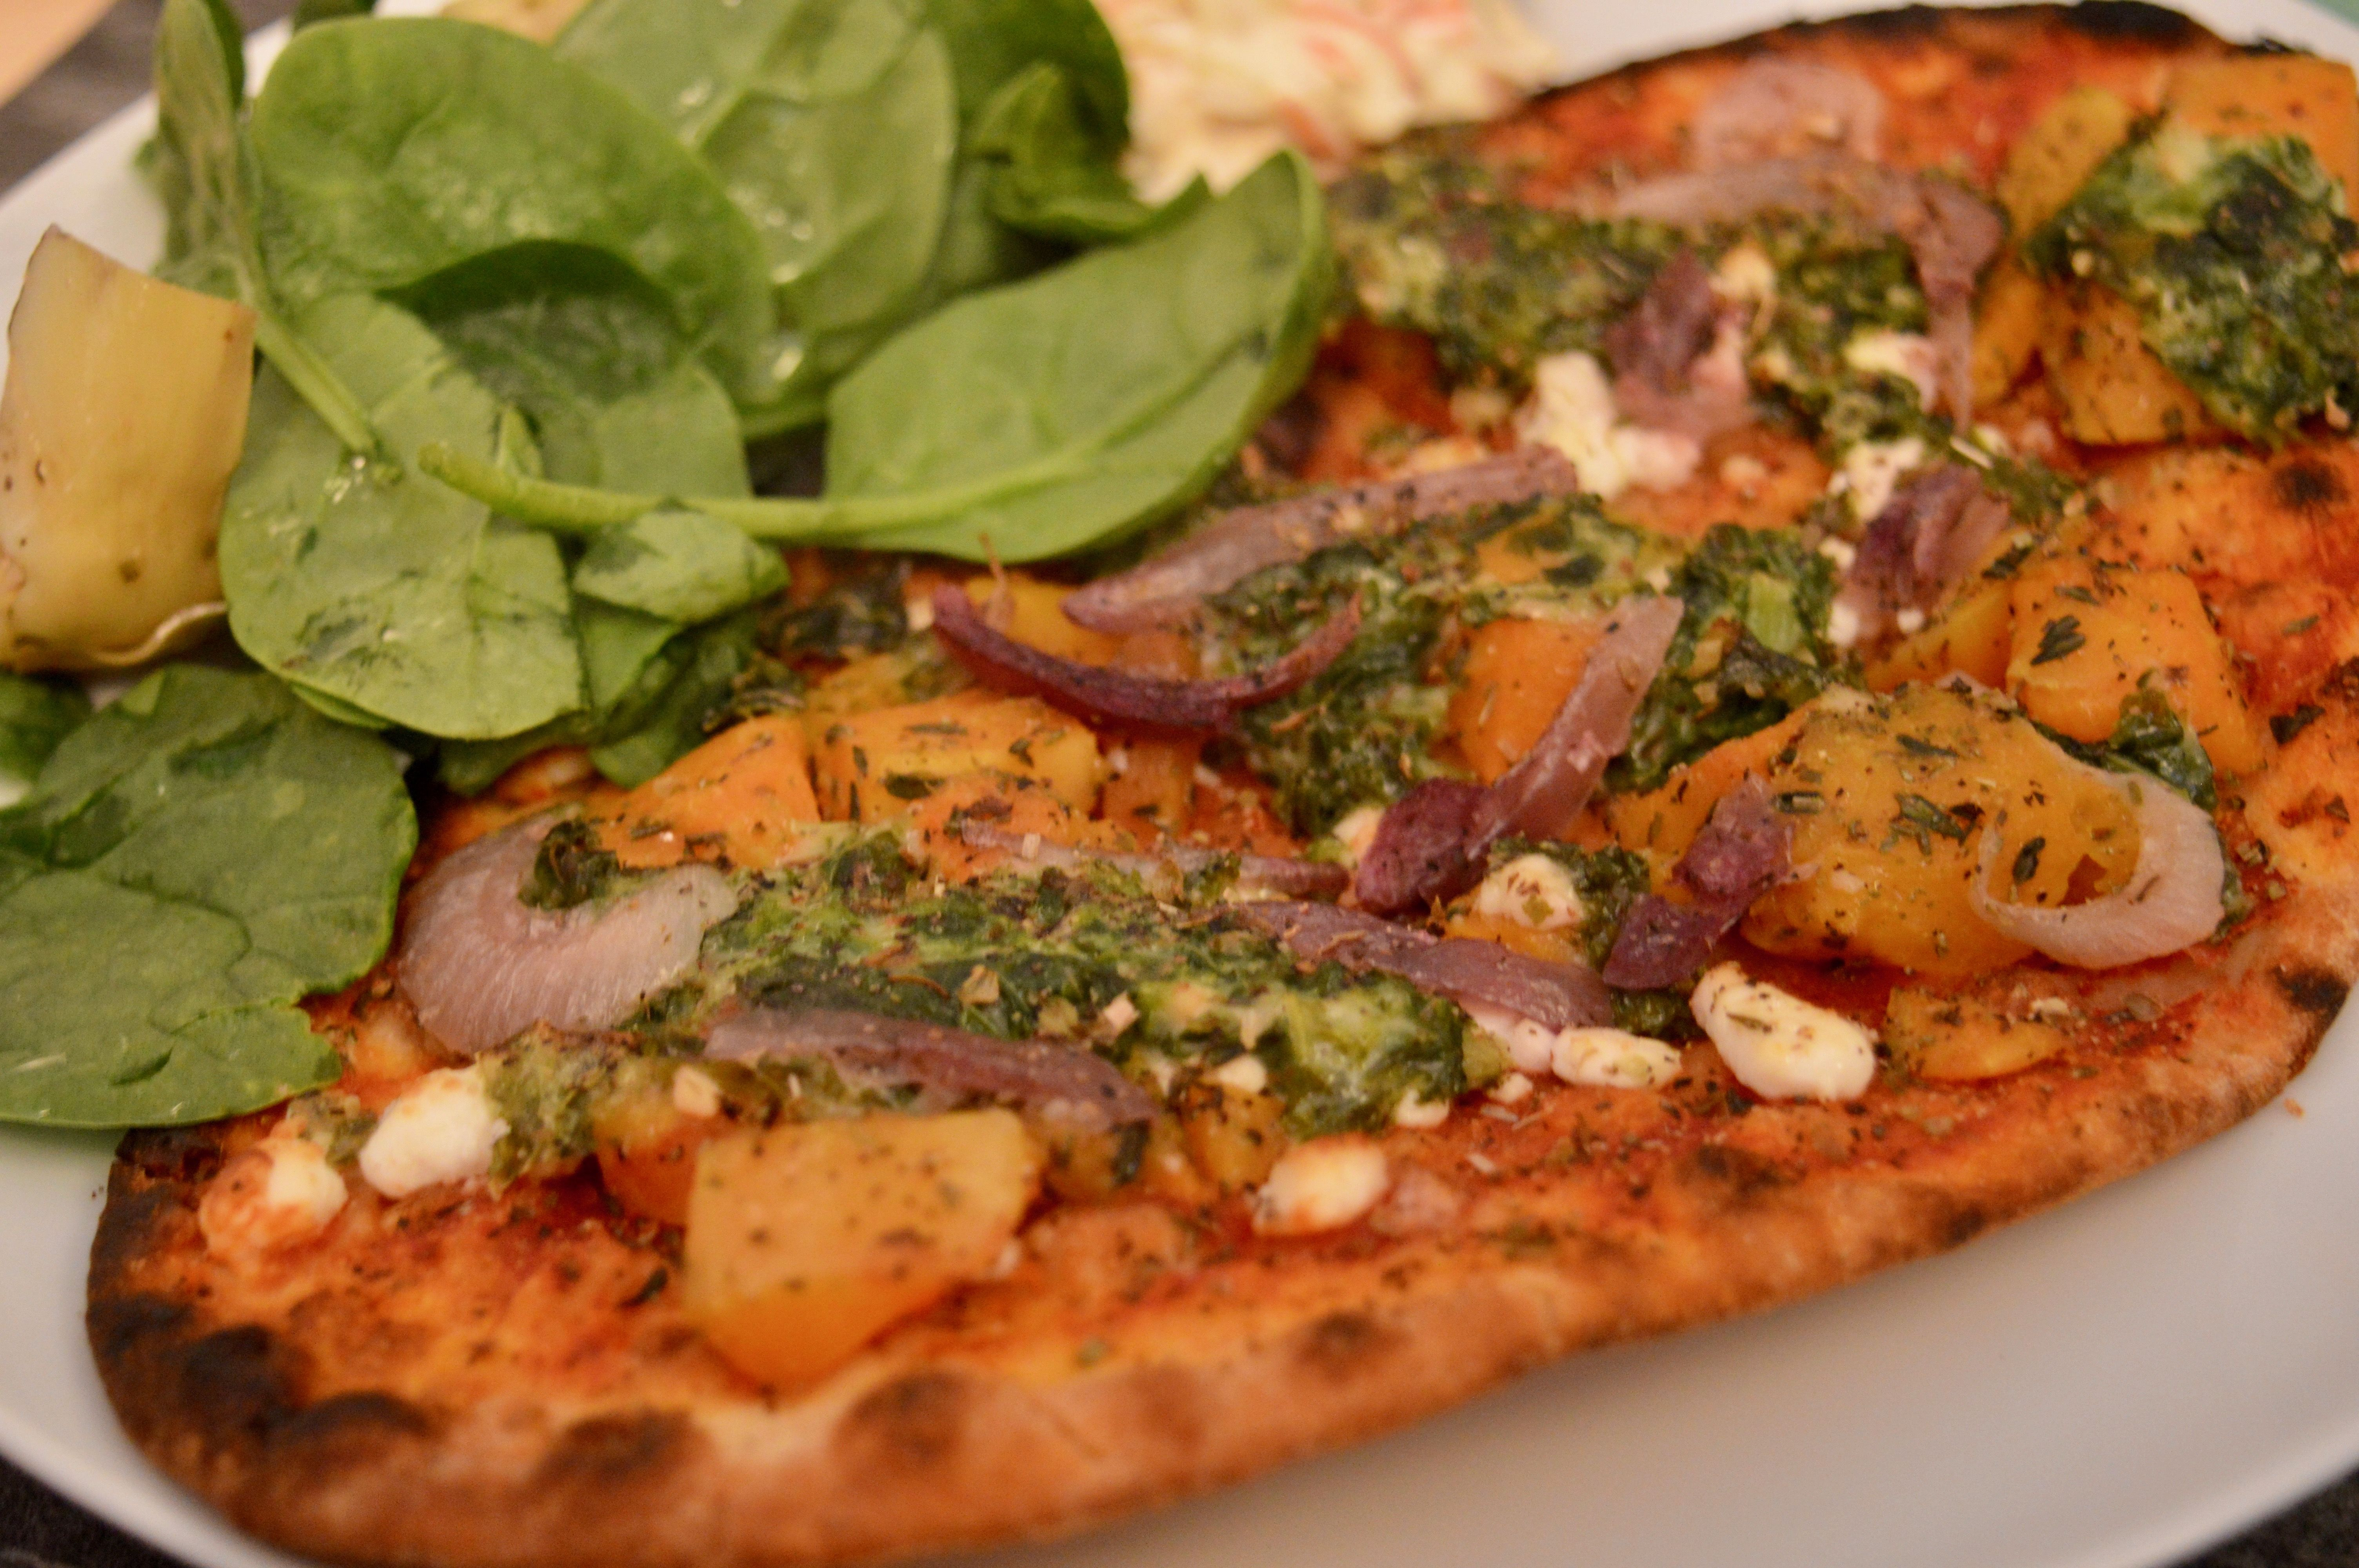 Lighter Dining With The Pizza Express Leggera Pizza Pizza